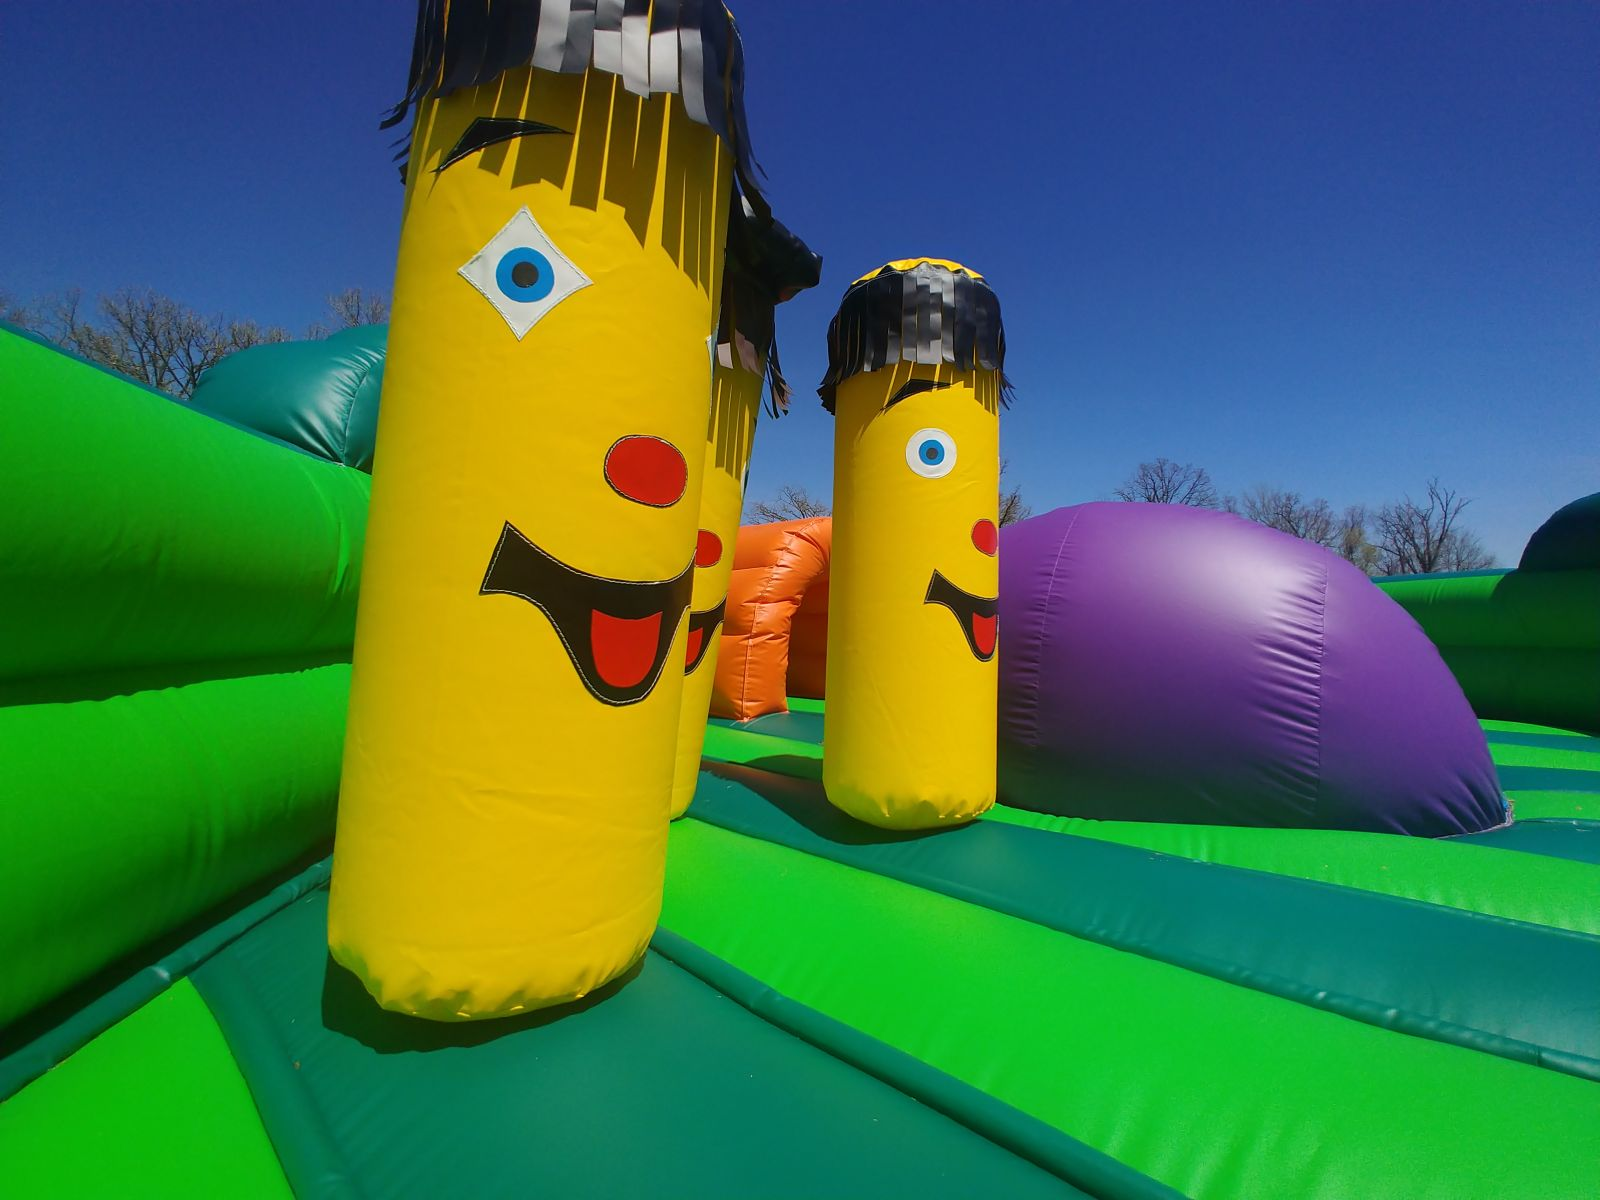 Inflatable obstacles inside bounce house rental for small children.